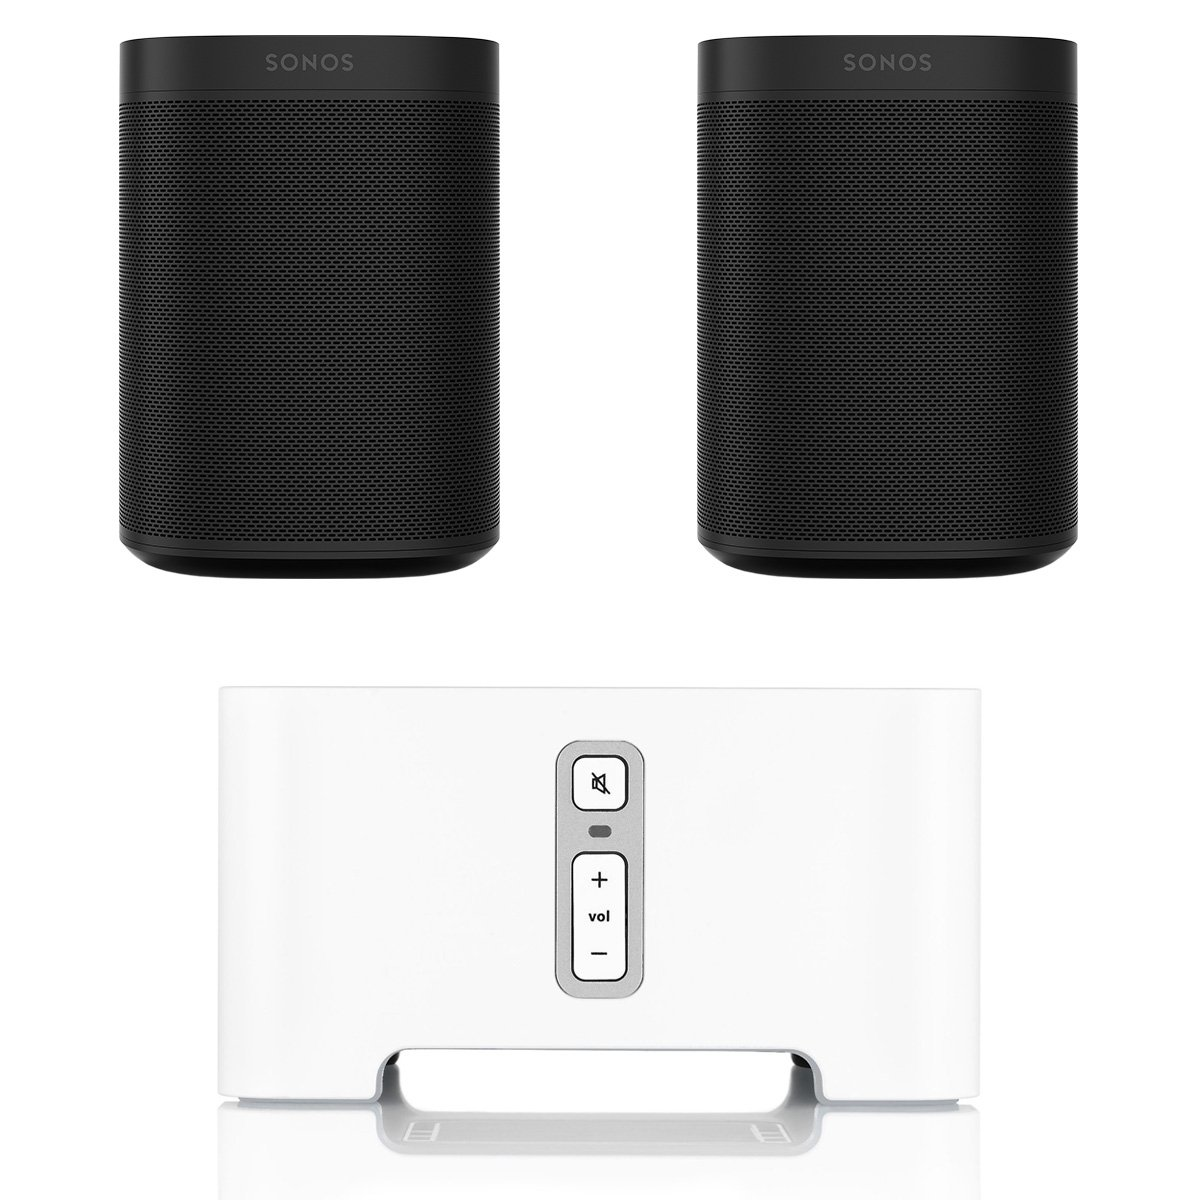 Sonos ONE Voice Controlled Smart Speakers (Black) with CONNECT Wireless Hi-Fi Player by Sonos